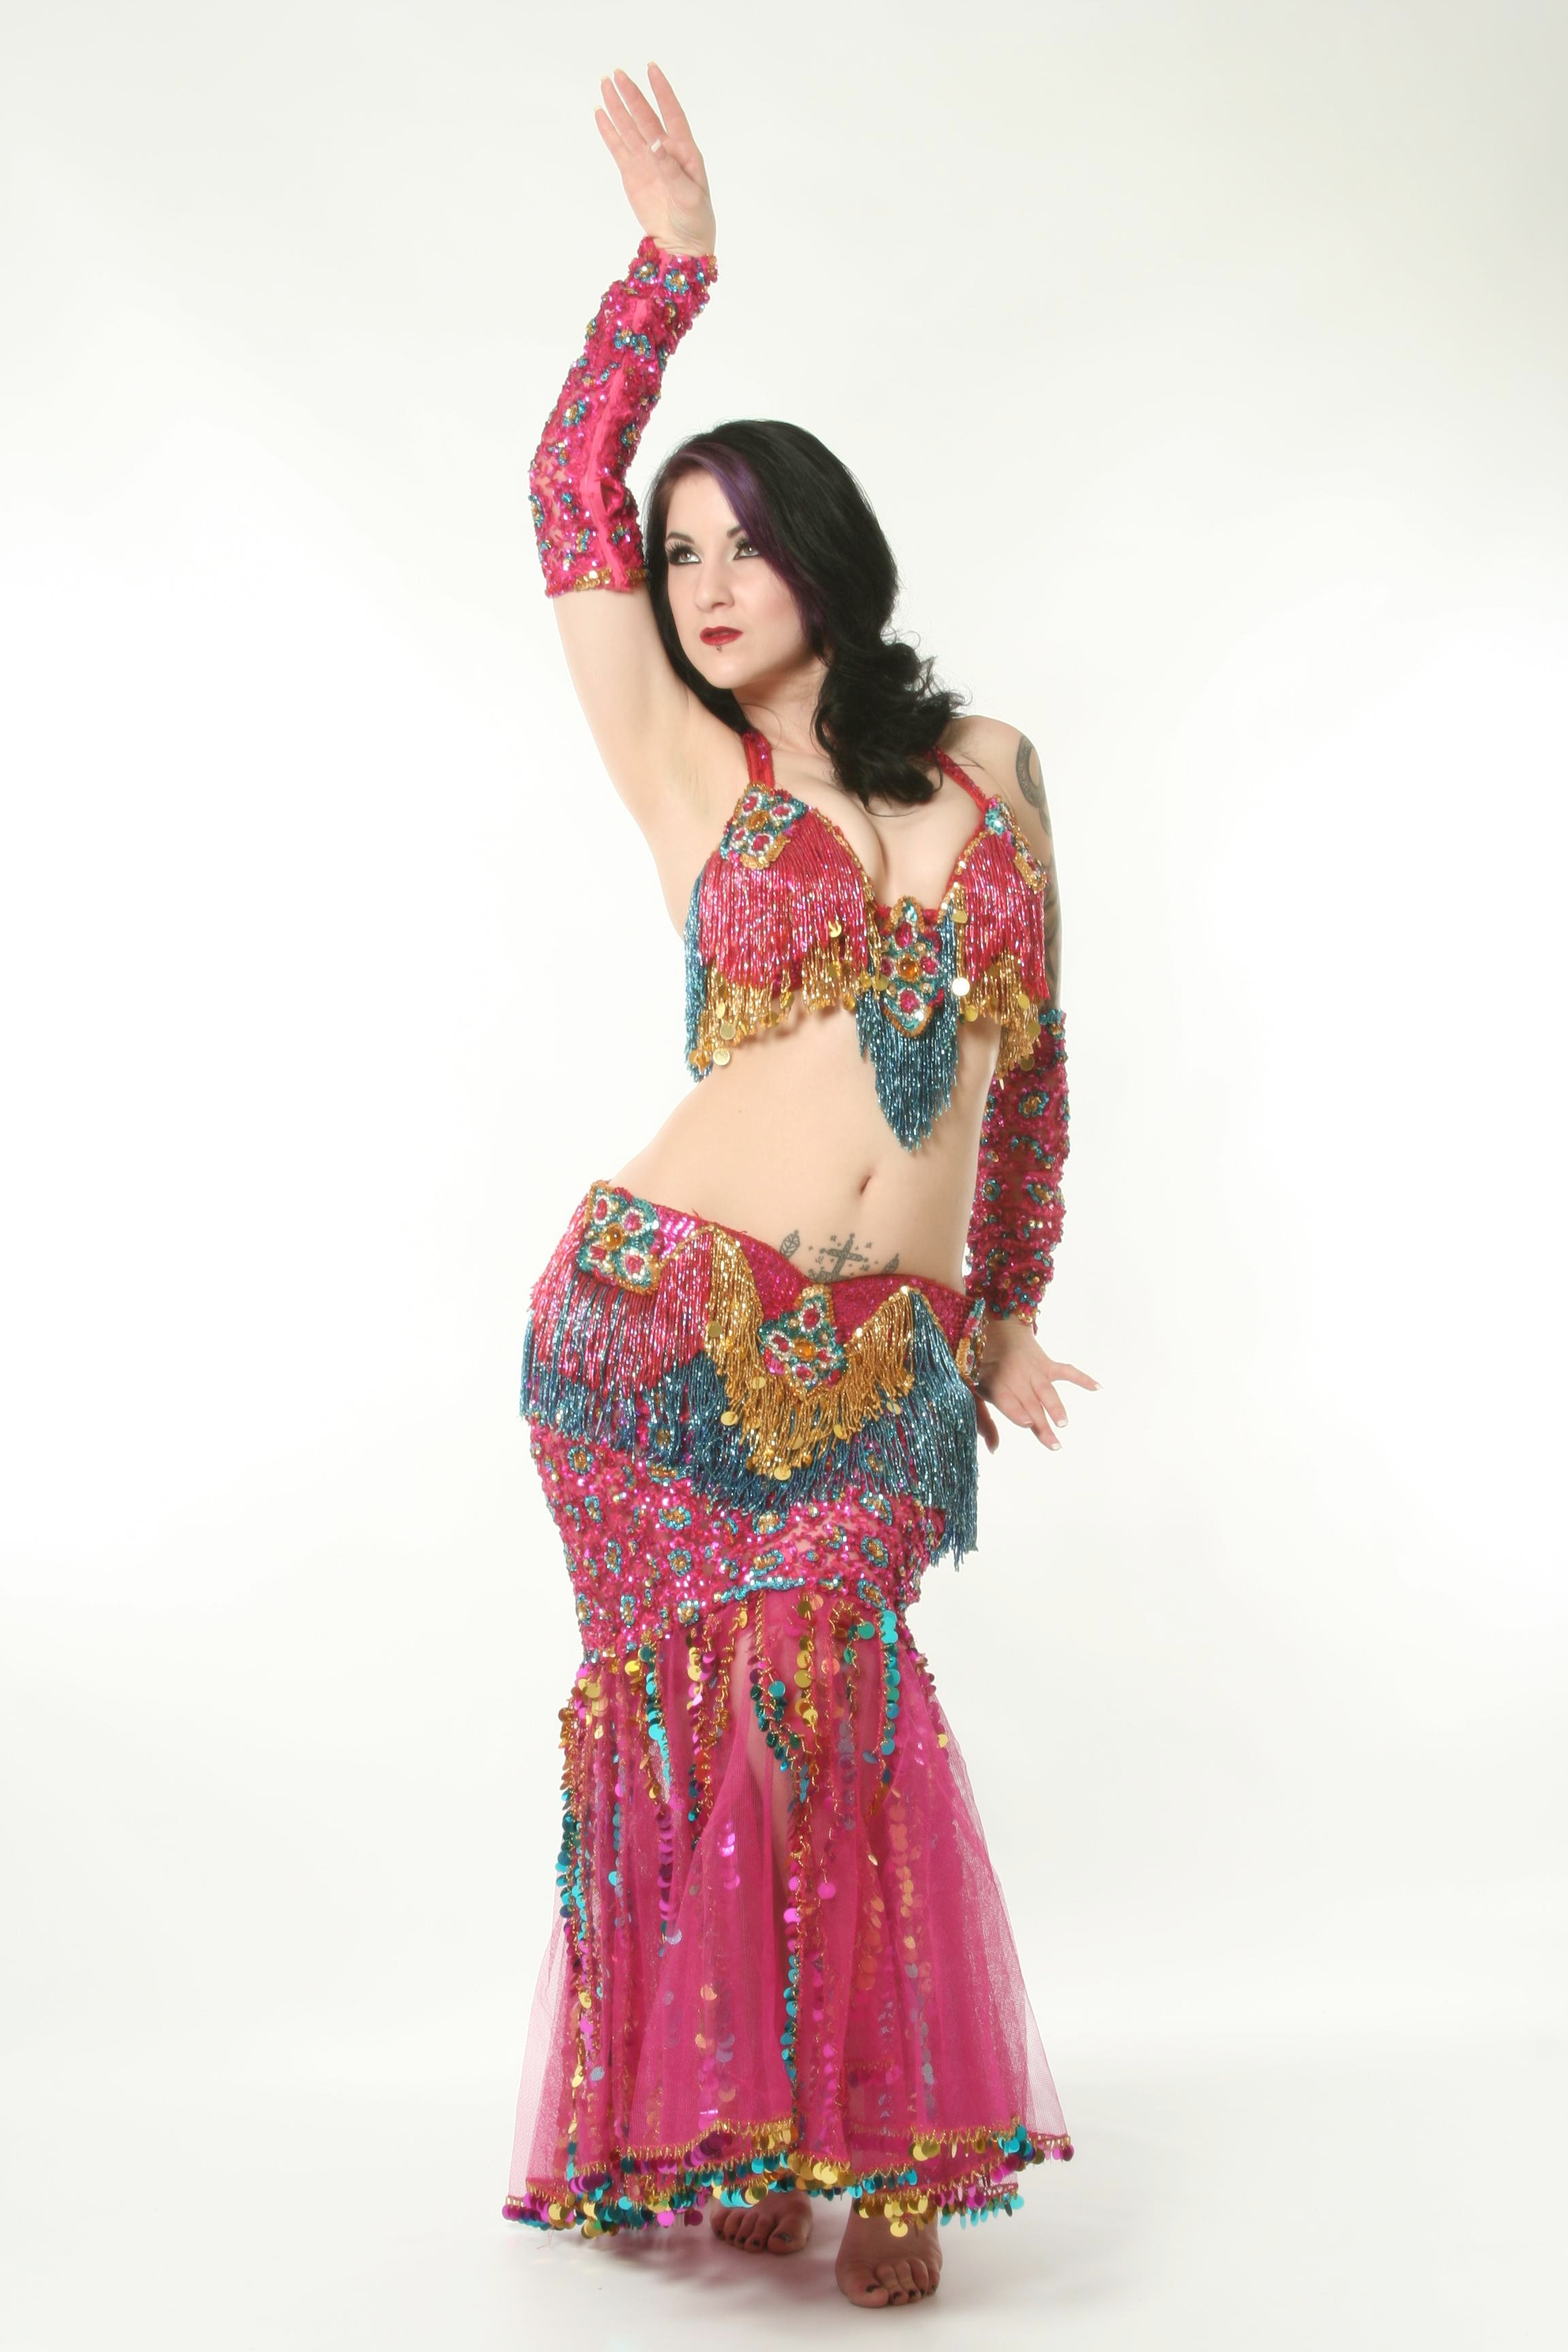 belly dancing Belly dance costumes & clothing tribal, fusion, cabaret, goth, dance, yoga, bollywood moon dance belly dance has a huge selection of affordable dance styles and accessories.